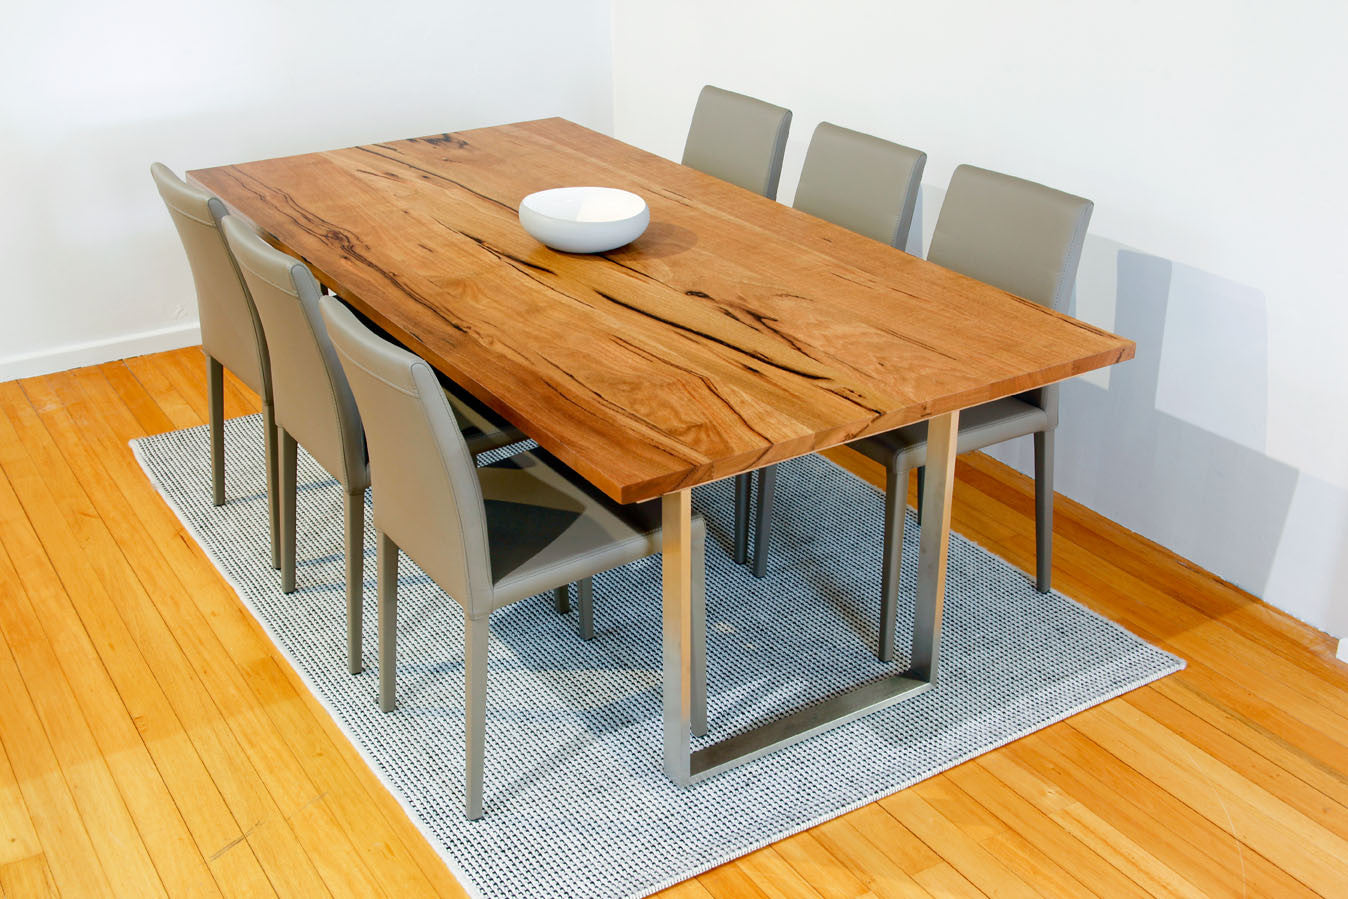 Mondo Marri and Jarrah Dining Table with Stainless Steel  : MG3155 from bespokefurnitureperth.com.au size 1348 x 899 jpeg 231kB